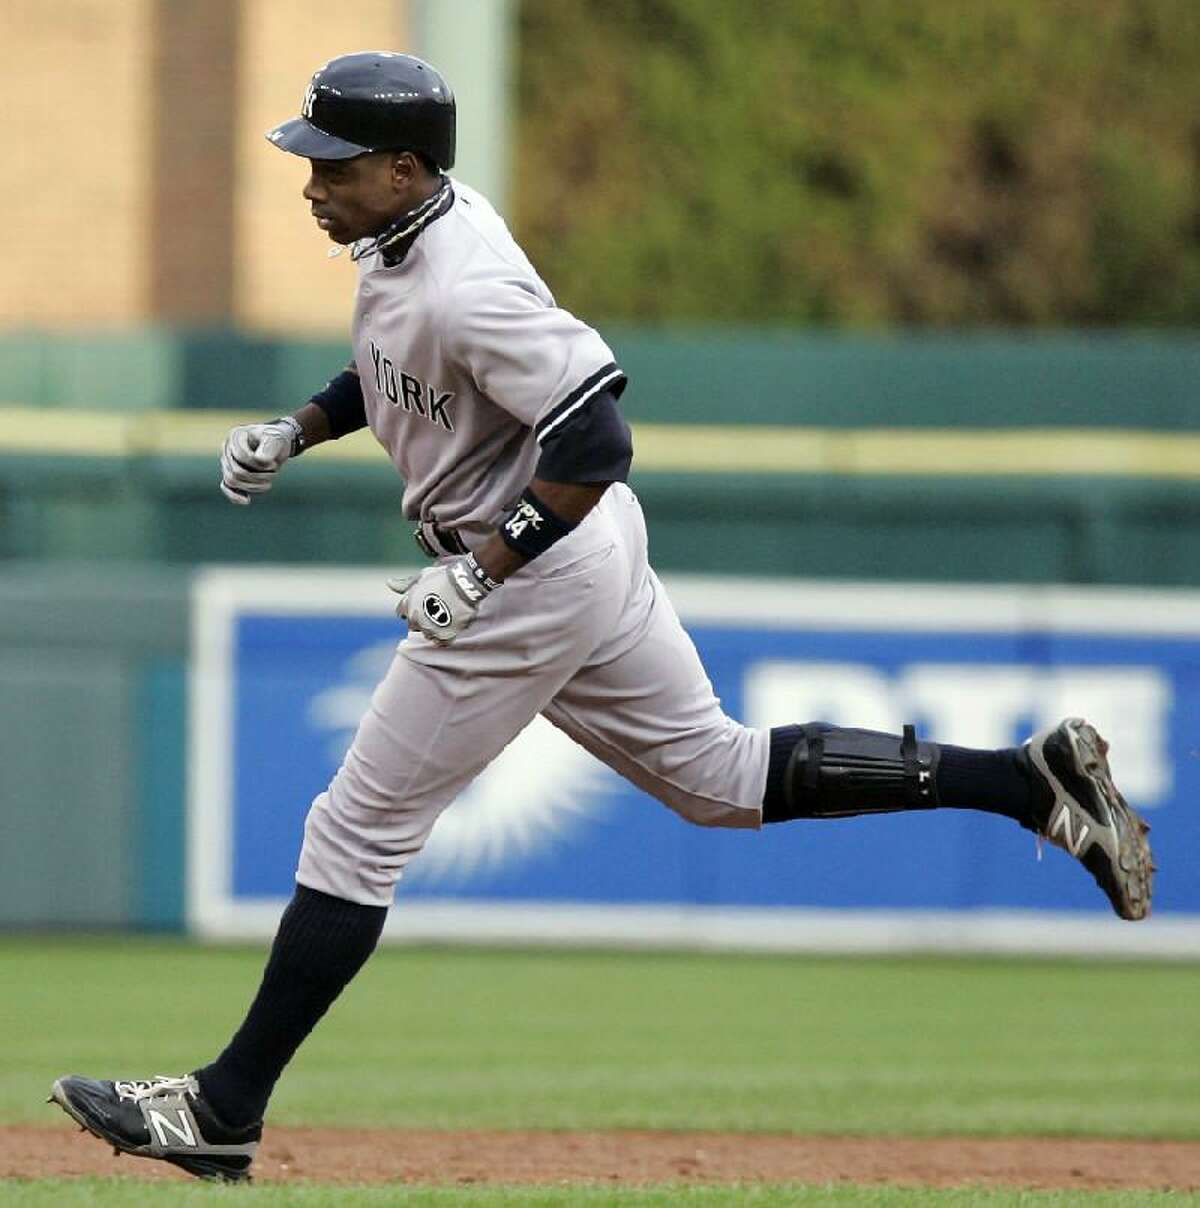 ASSOCIATED PRESS New York Yankees' Curtis Granderson rounds the bases after hitting a three-run home run against the Detroit Tigers in the third inning of Wednesday night's game in Detroit.